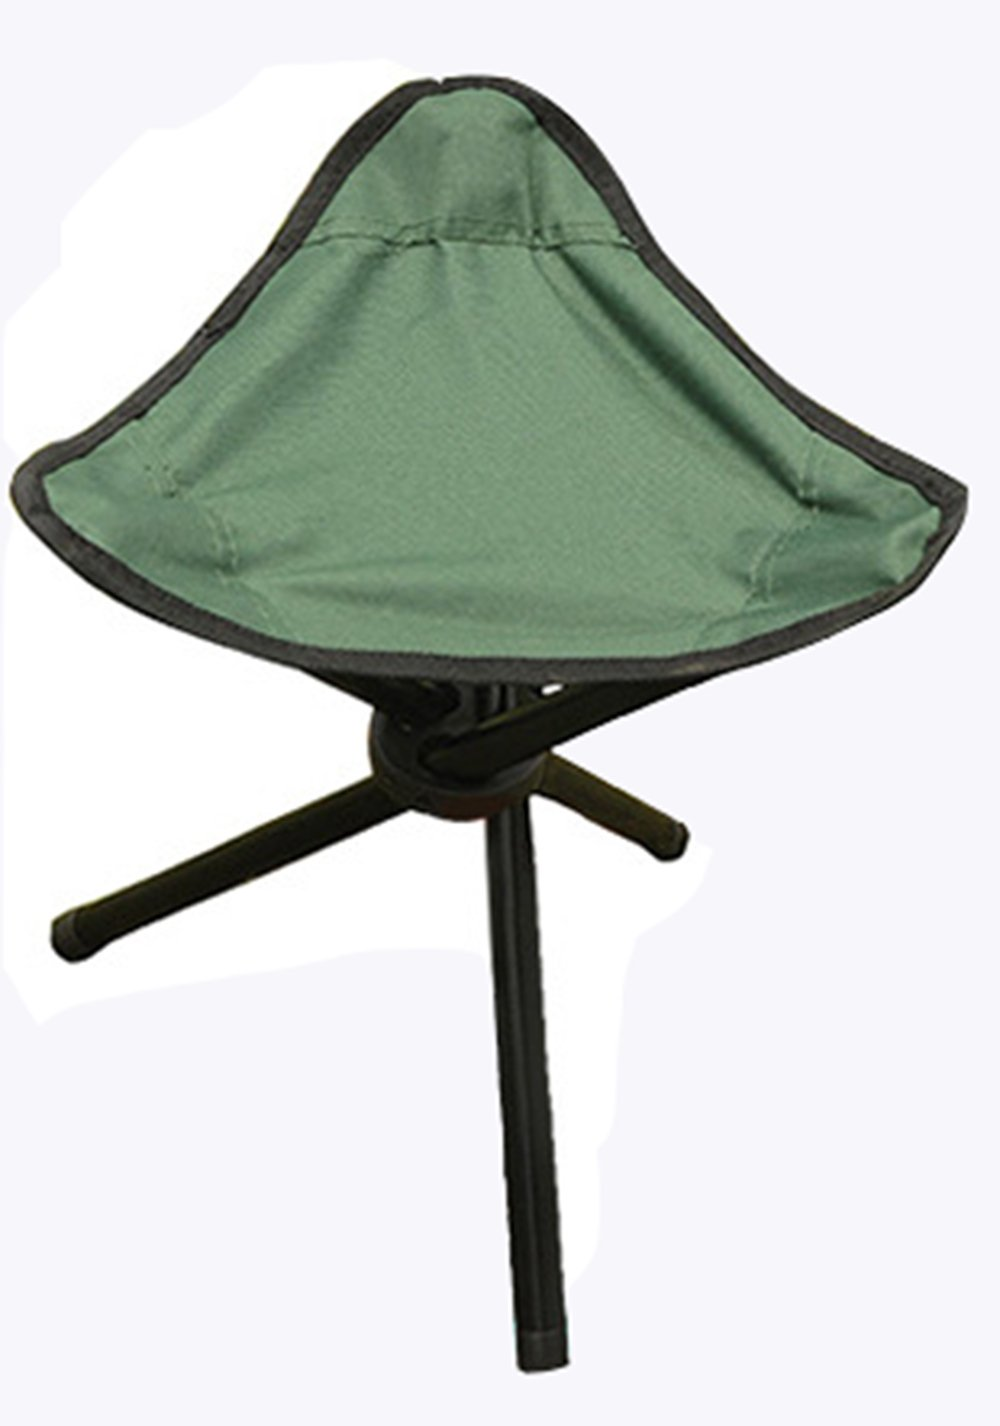 Sigmat Lightweight Portable Camp Stool Tripod Camp Chair for Outdoor Camping